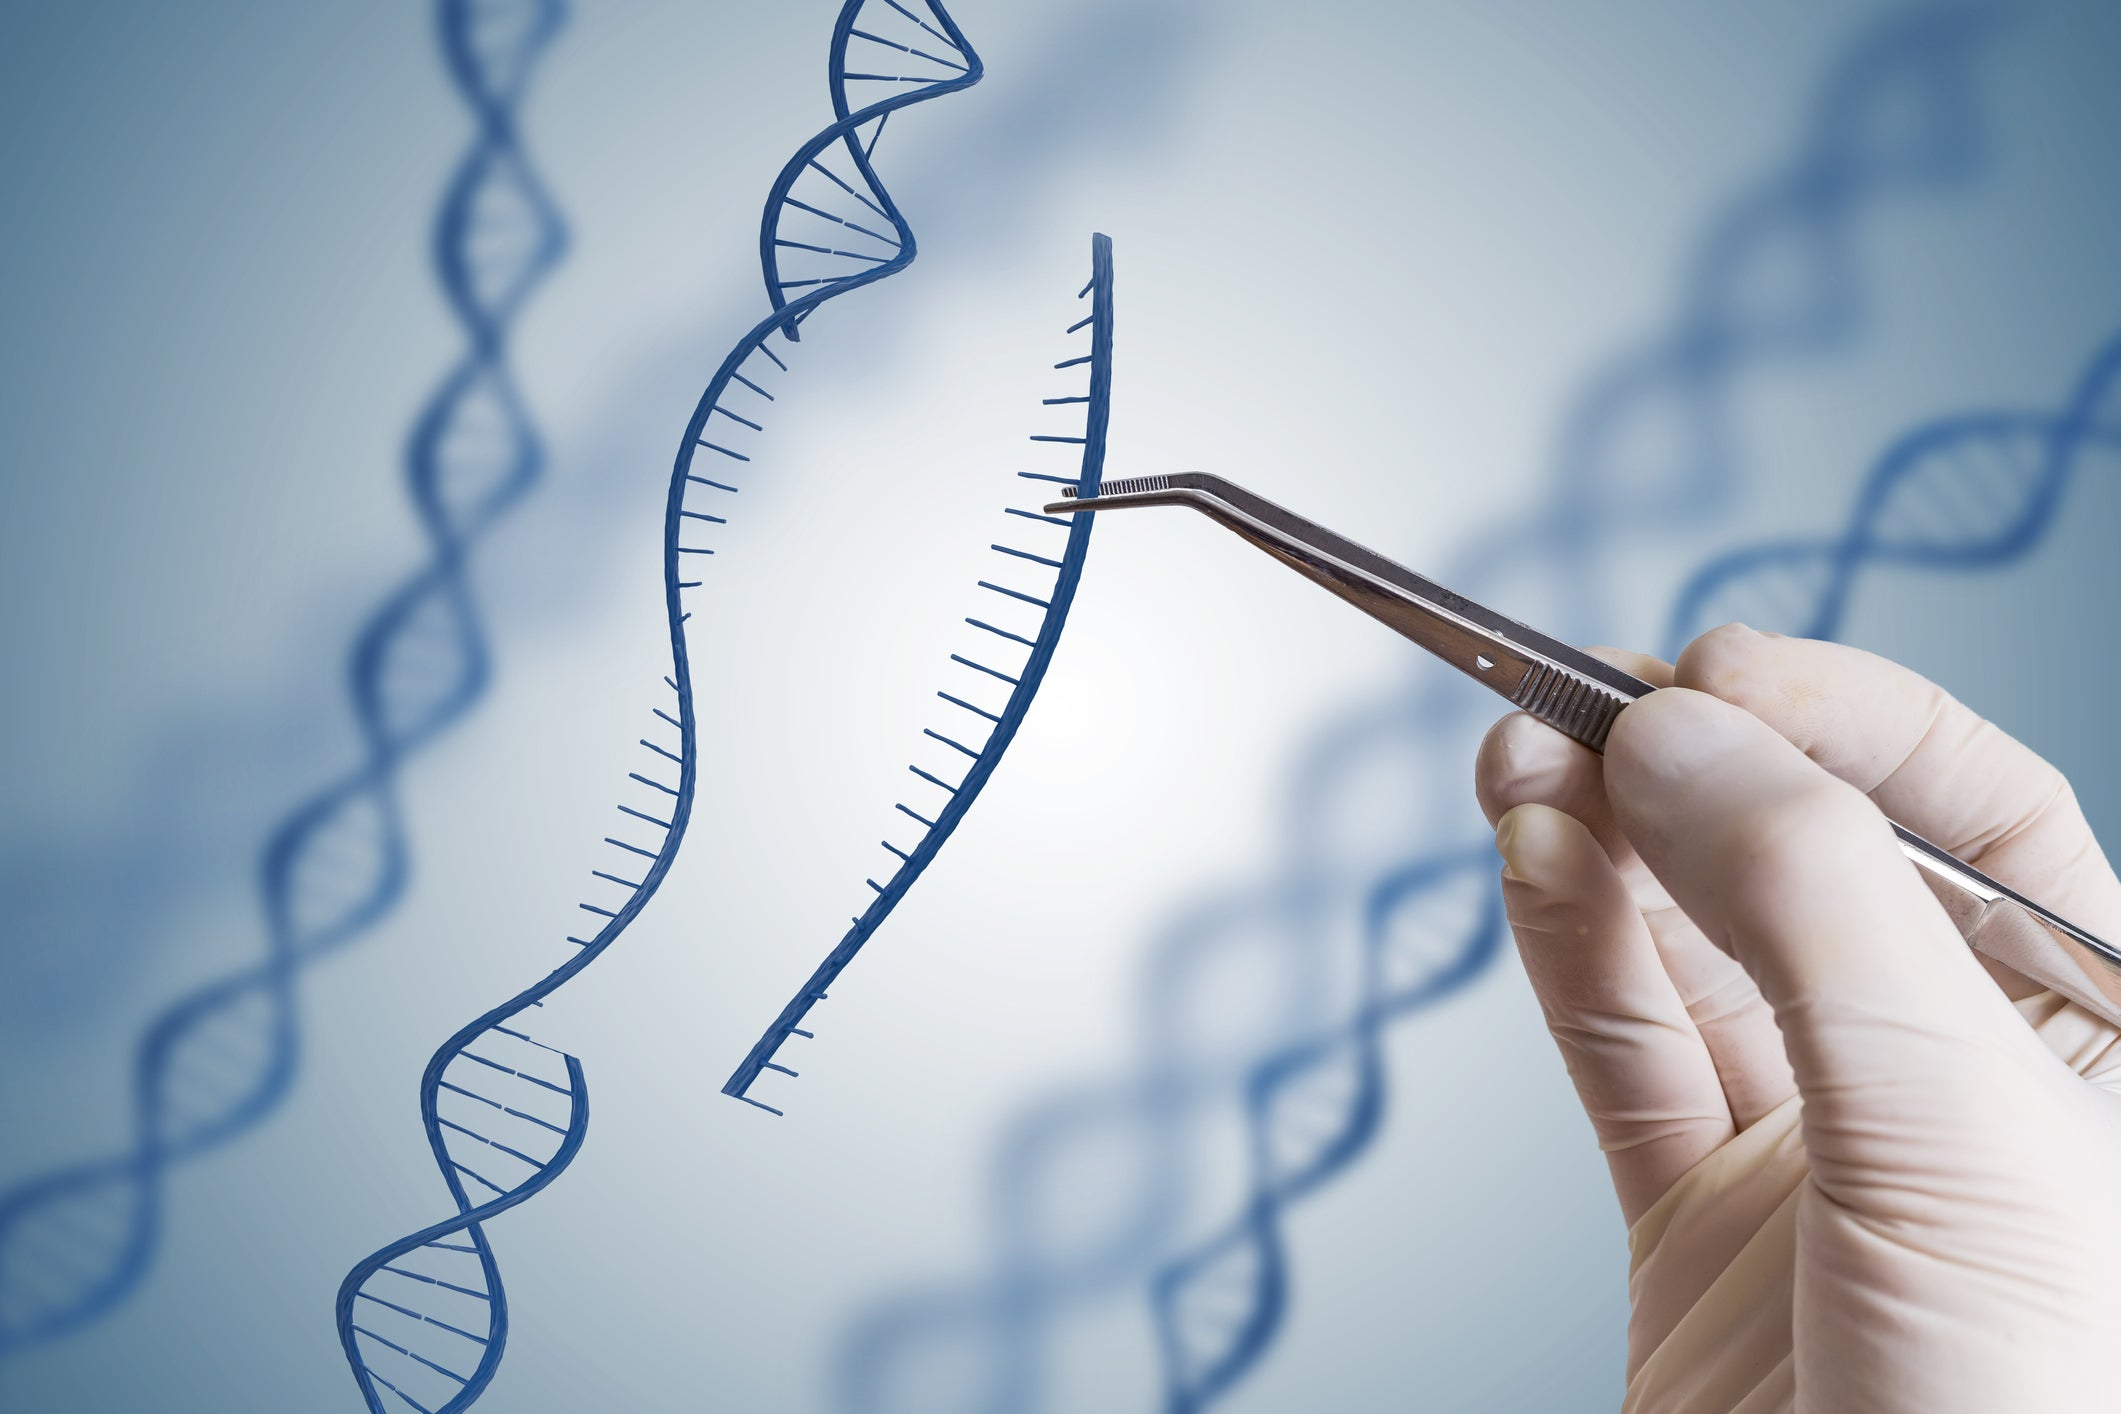 DNA strand being modified by a hand with medical tweezers.